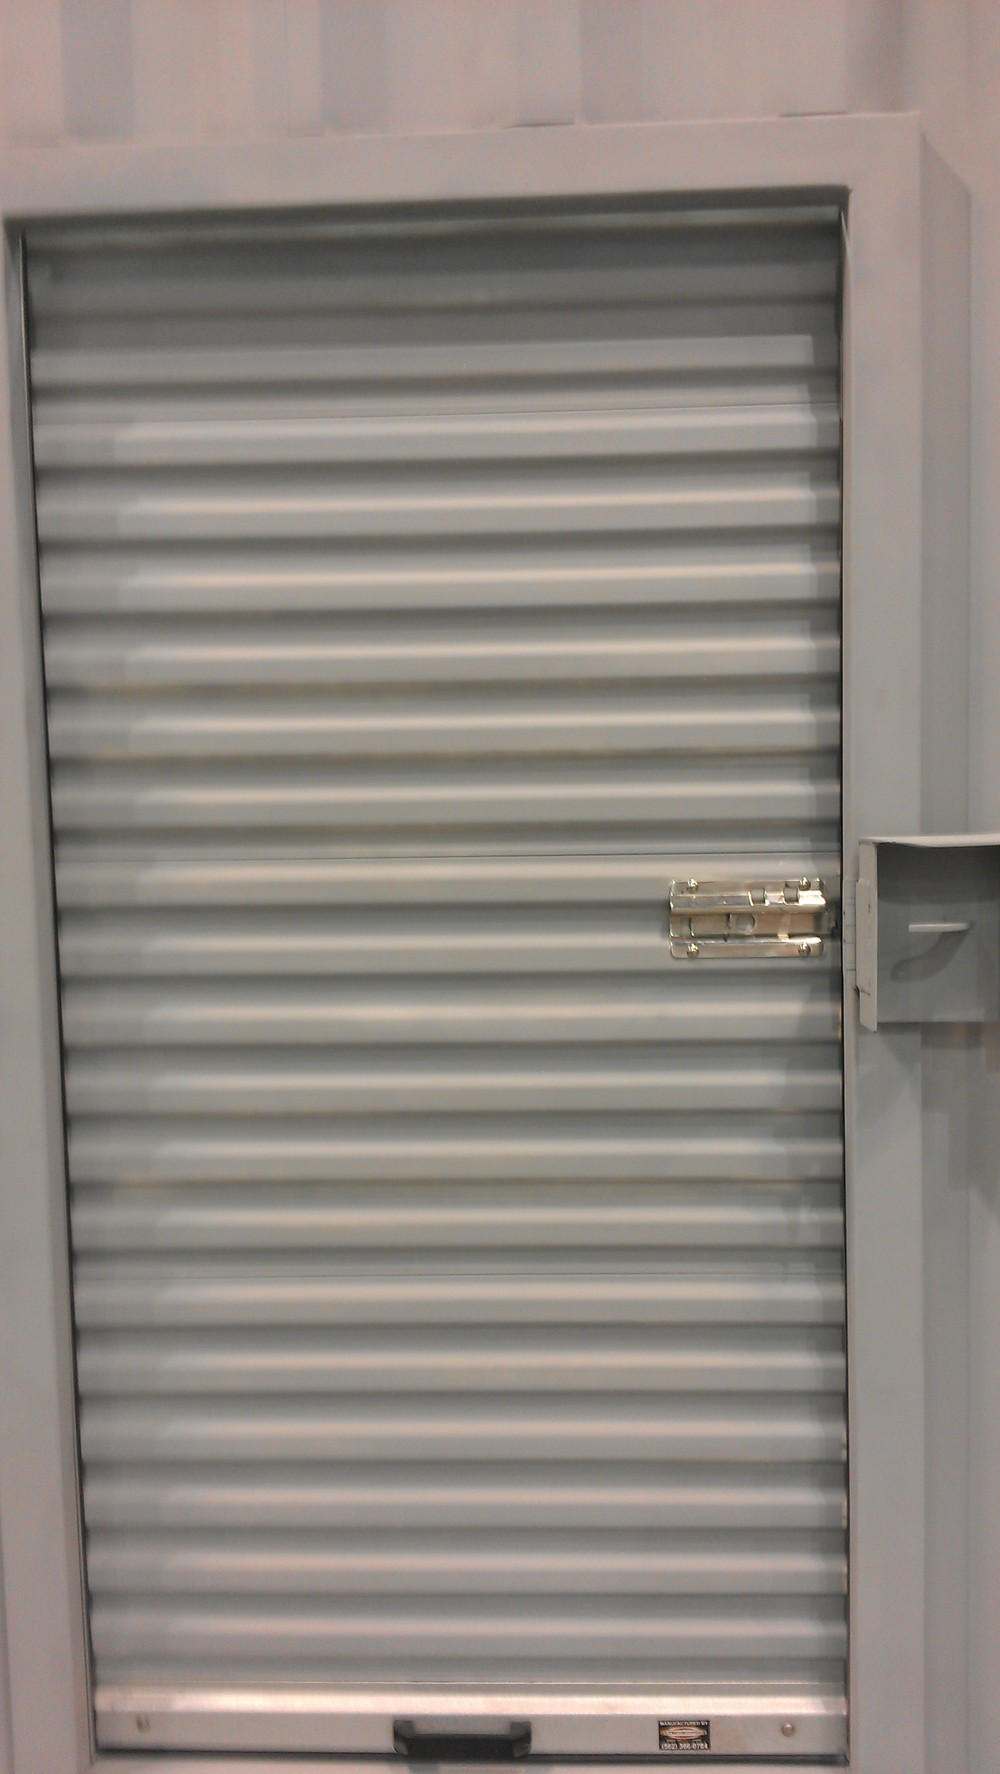 Narrow roll-up door installed with optional lockbox